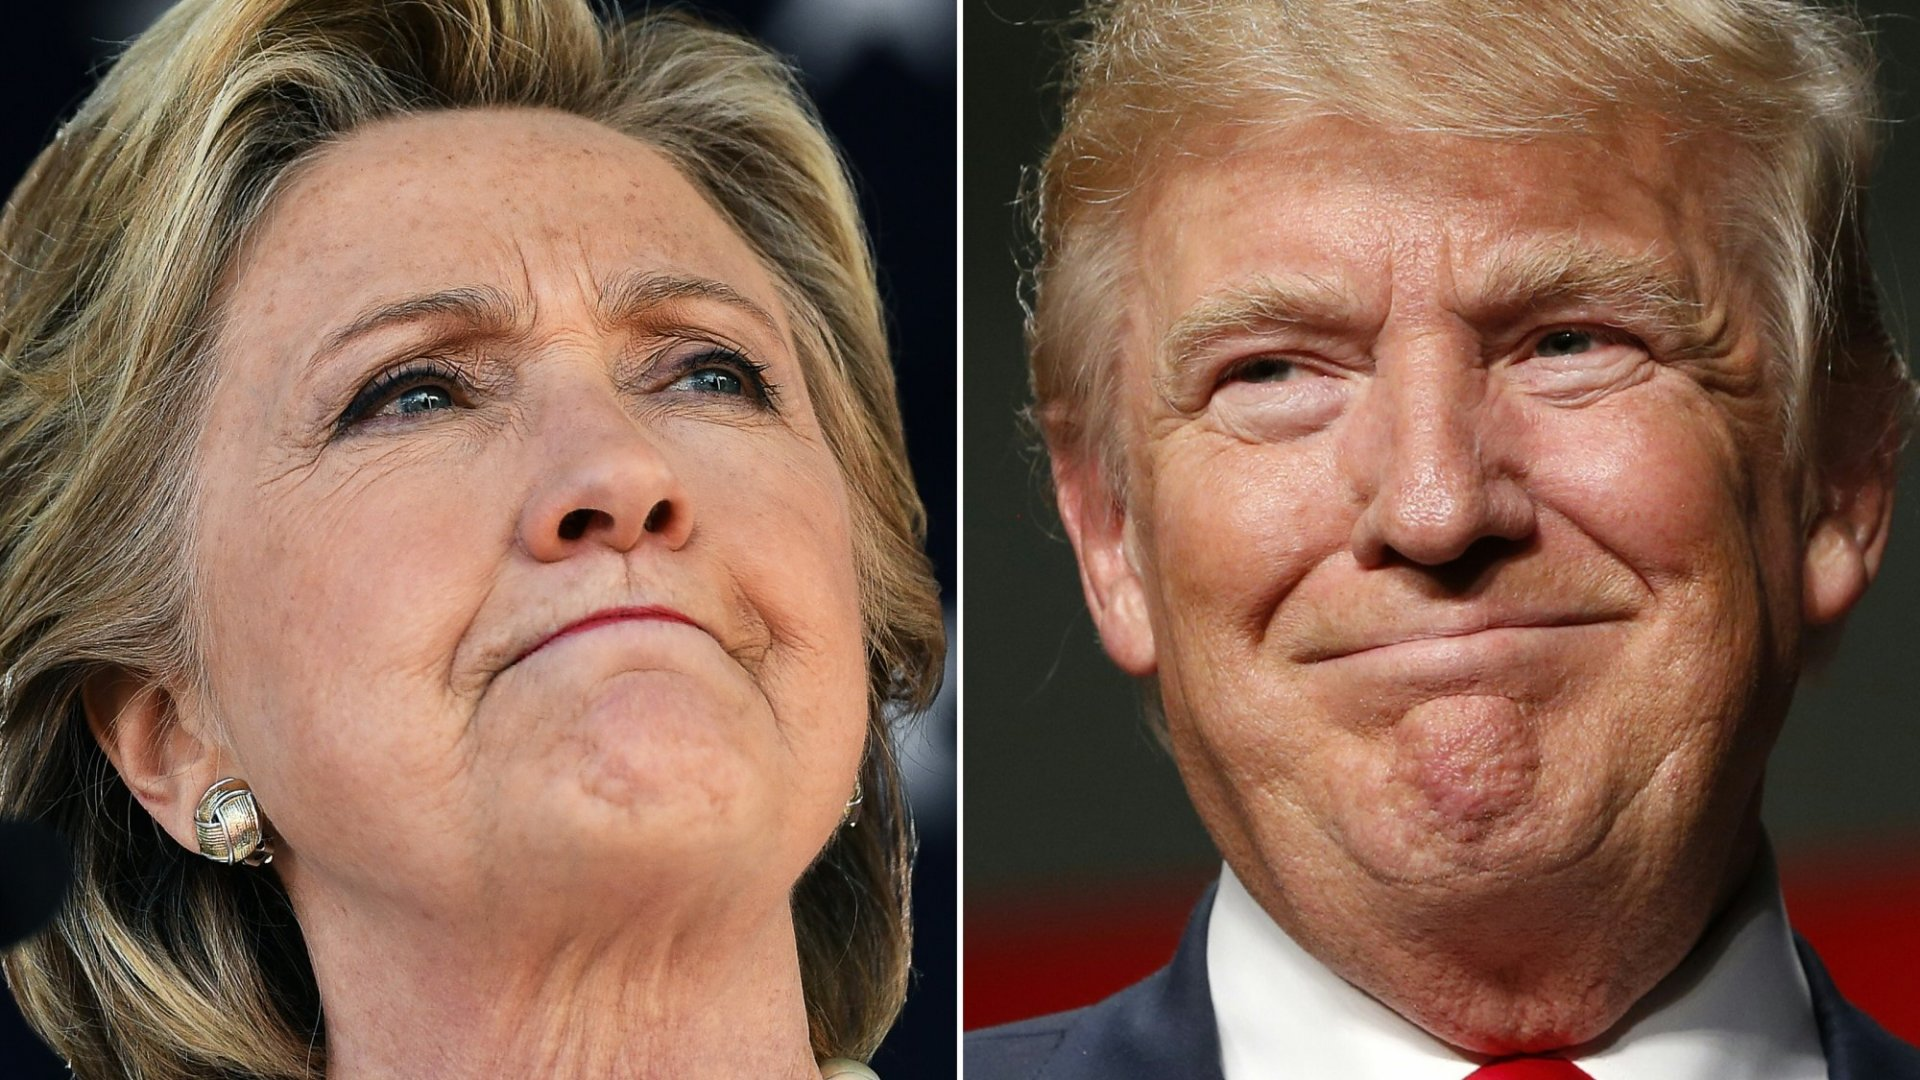 3 Important Leadership Lessons You Can Learn From One Very Weird Election